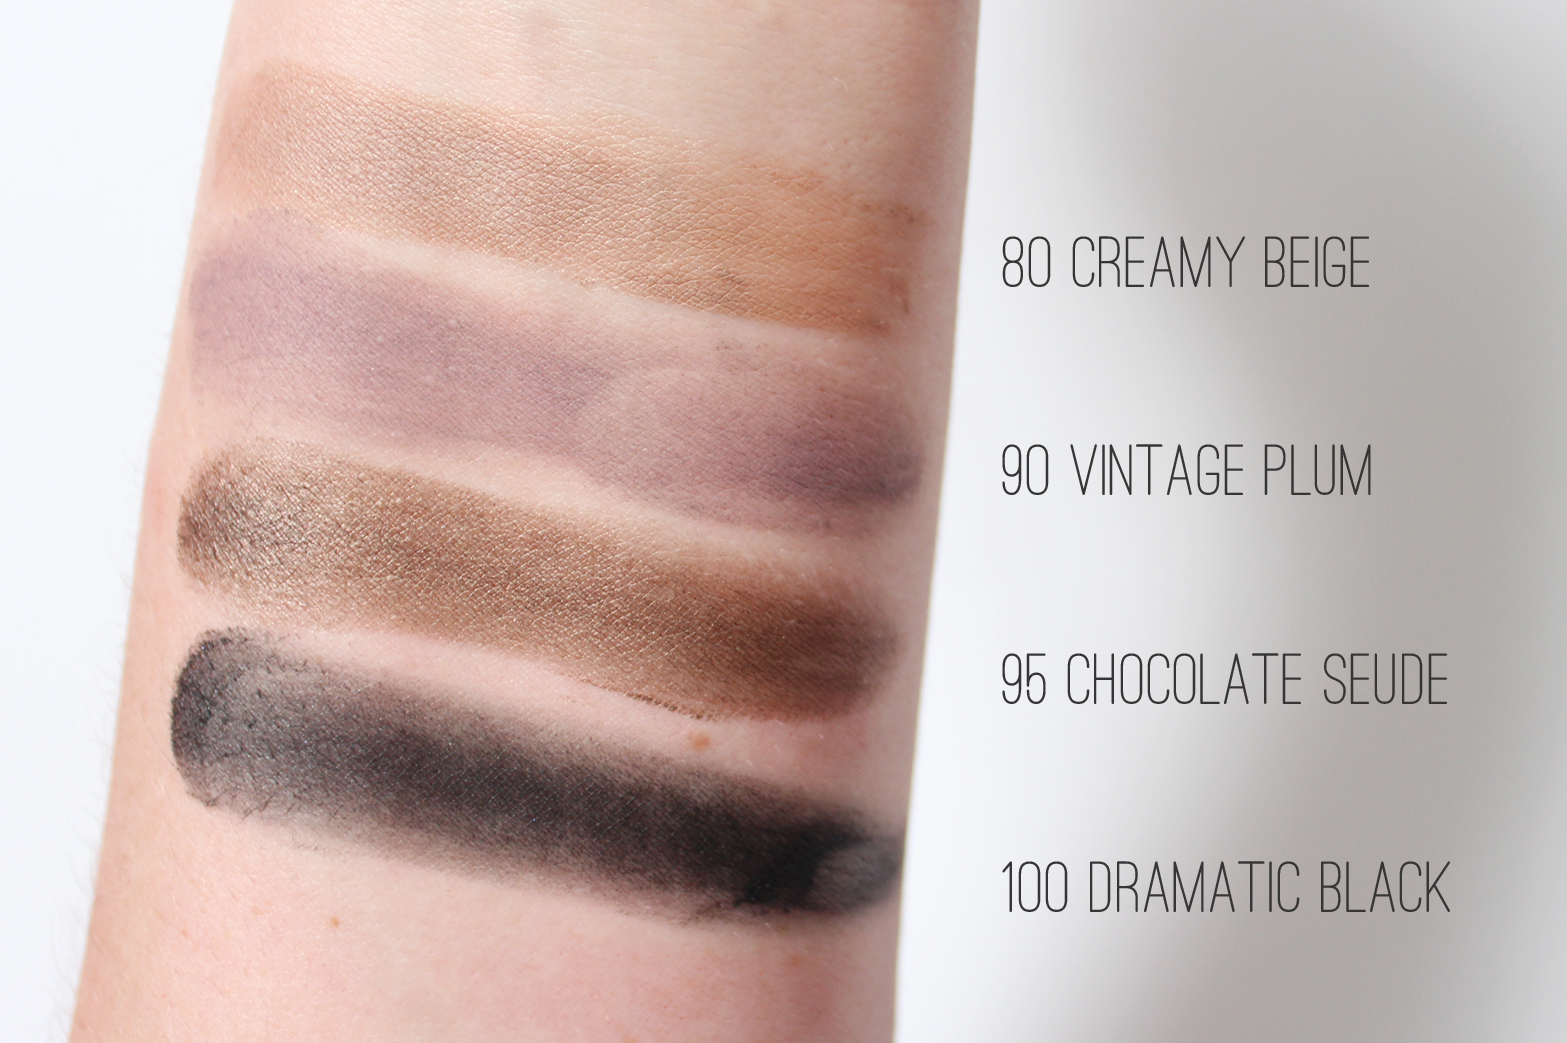 MAYBELLINE   Color Tattoo 24hr Eyeshadow Leather - Review + Swatches - CassandraMyee